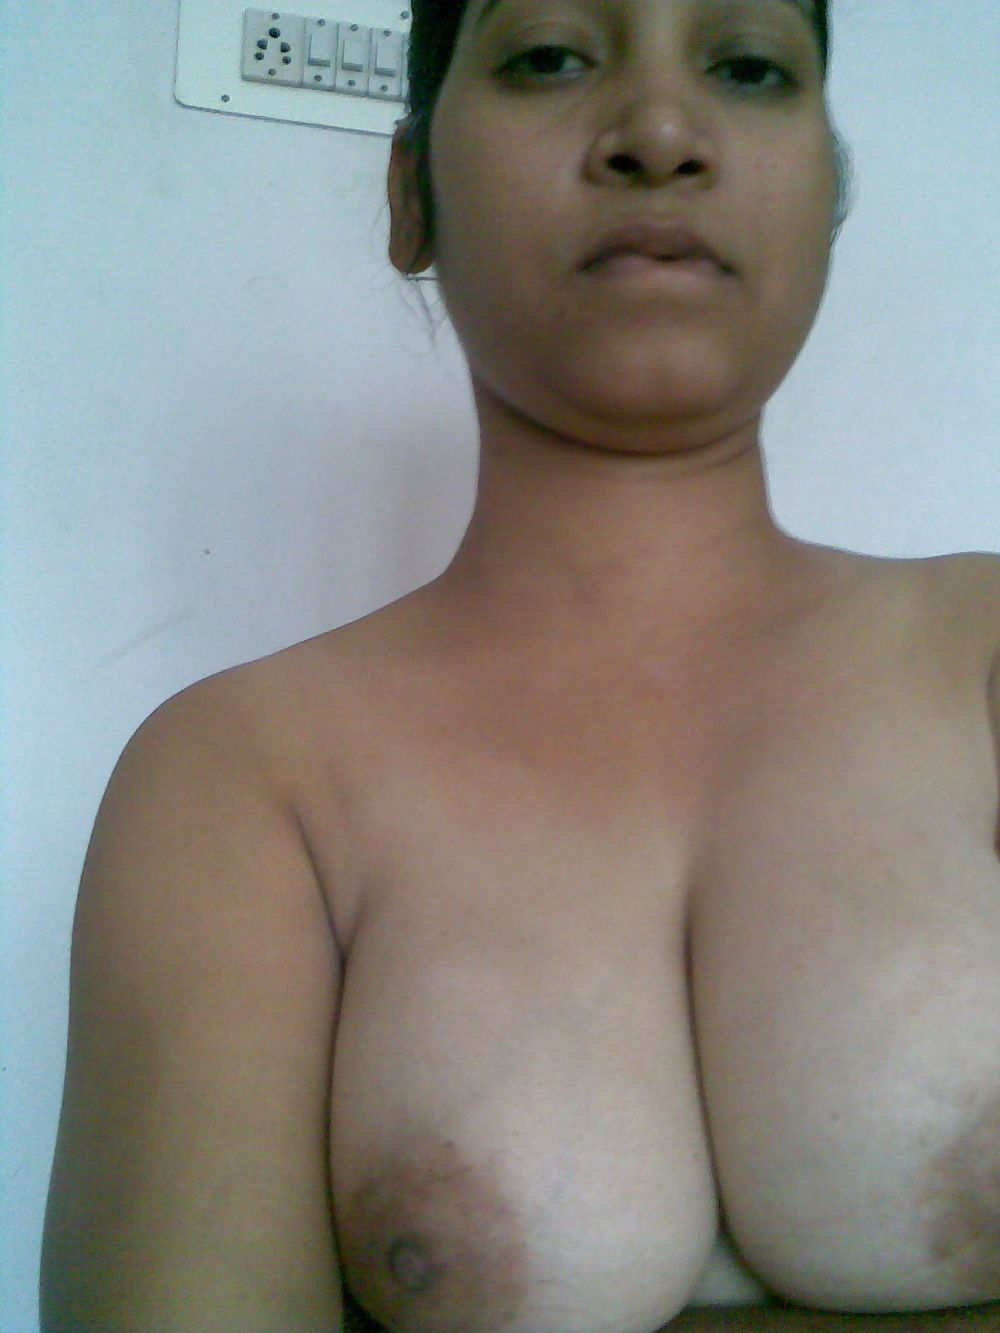 Hot and sexy nude nepali women final, sorry